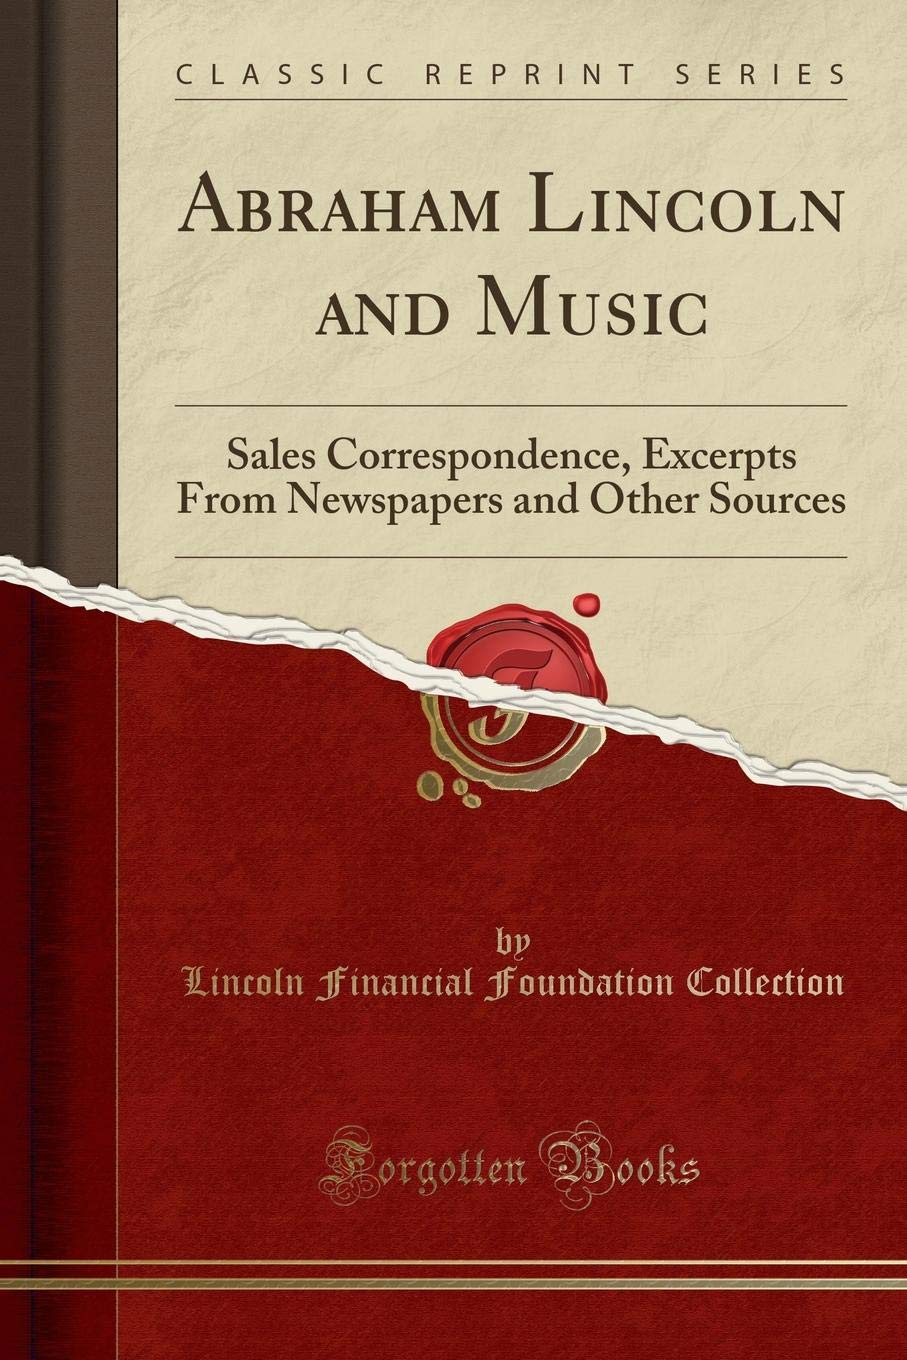 Abraham Lincoln and Music: Sales Correspondence, Excerpts From Newspapers and Other Sources (Classic Reprint) ebook